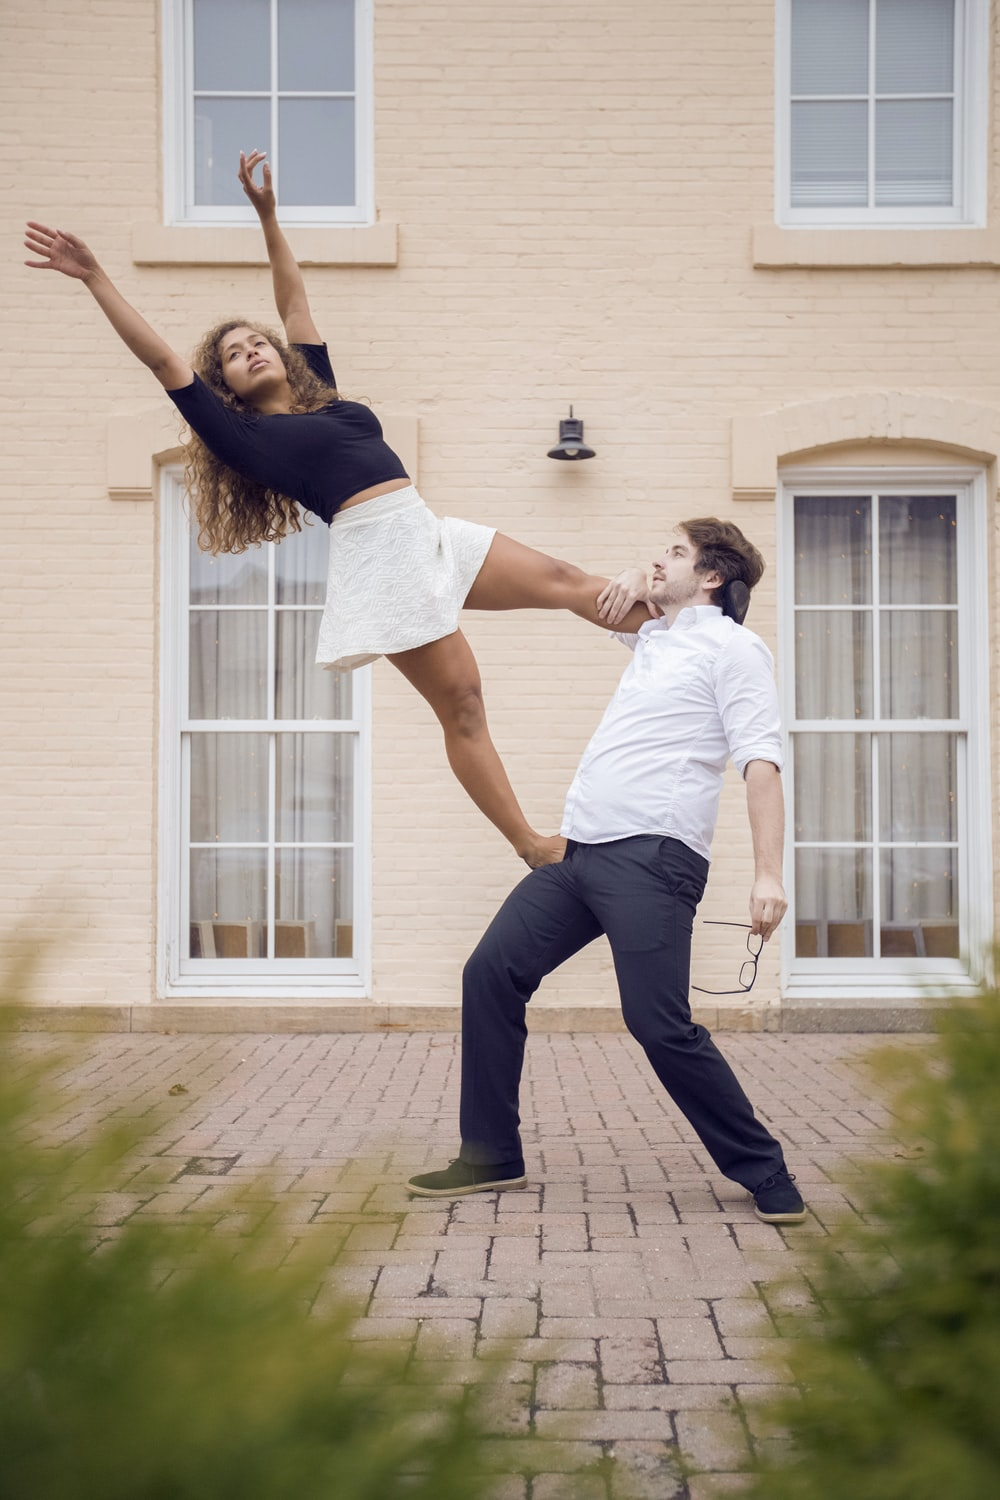 woman stepping on man while posing near building during daytime